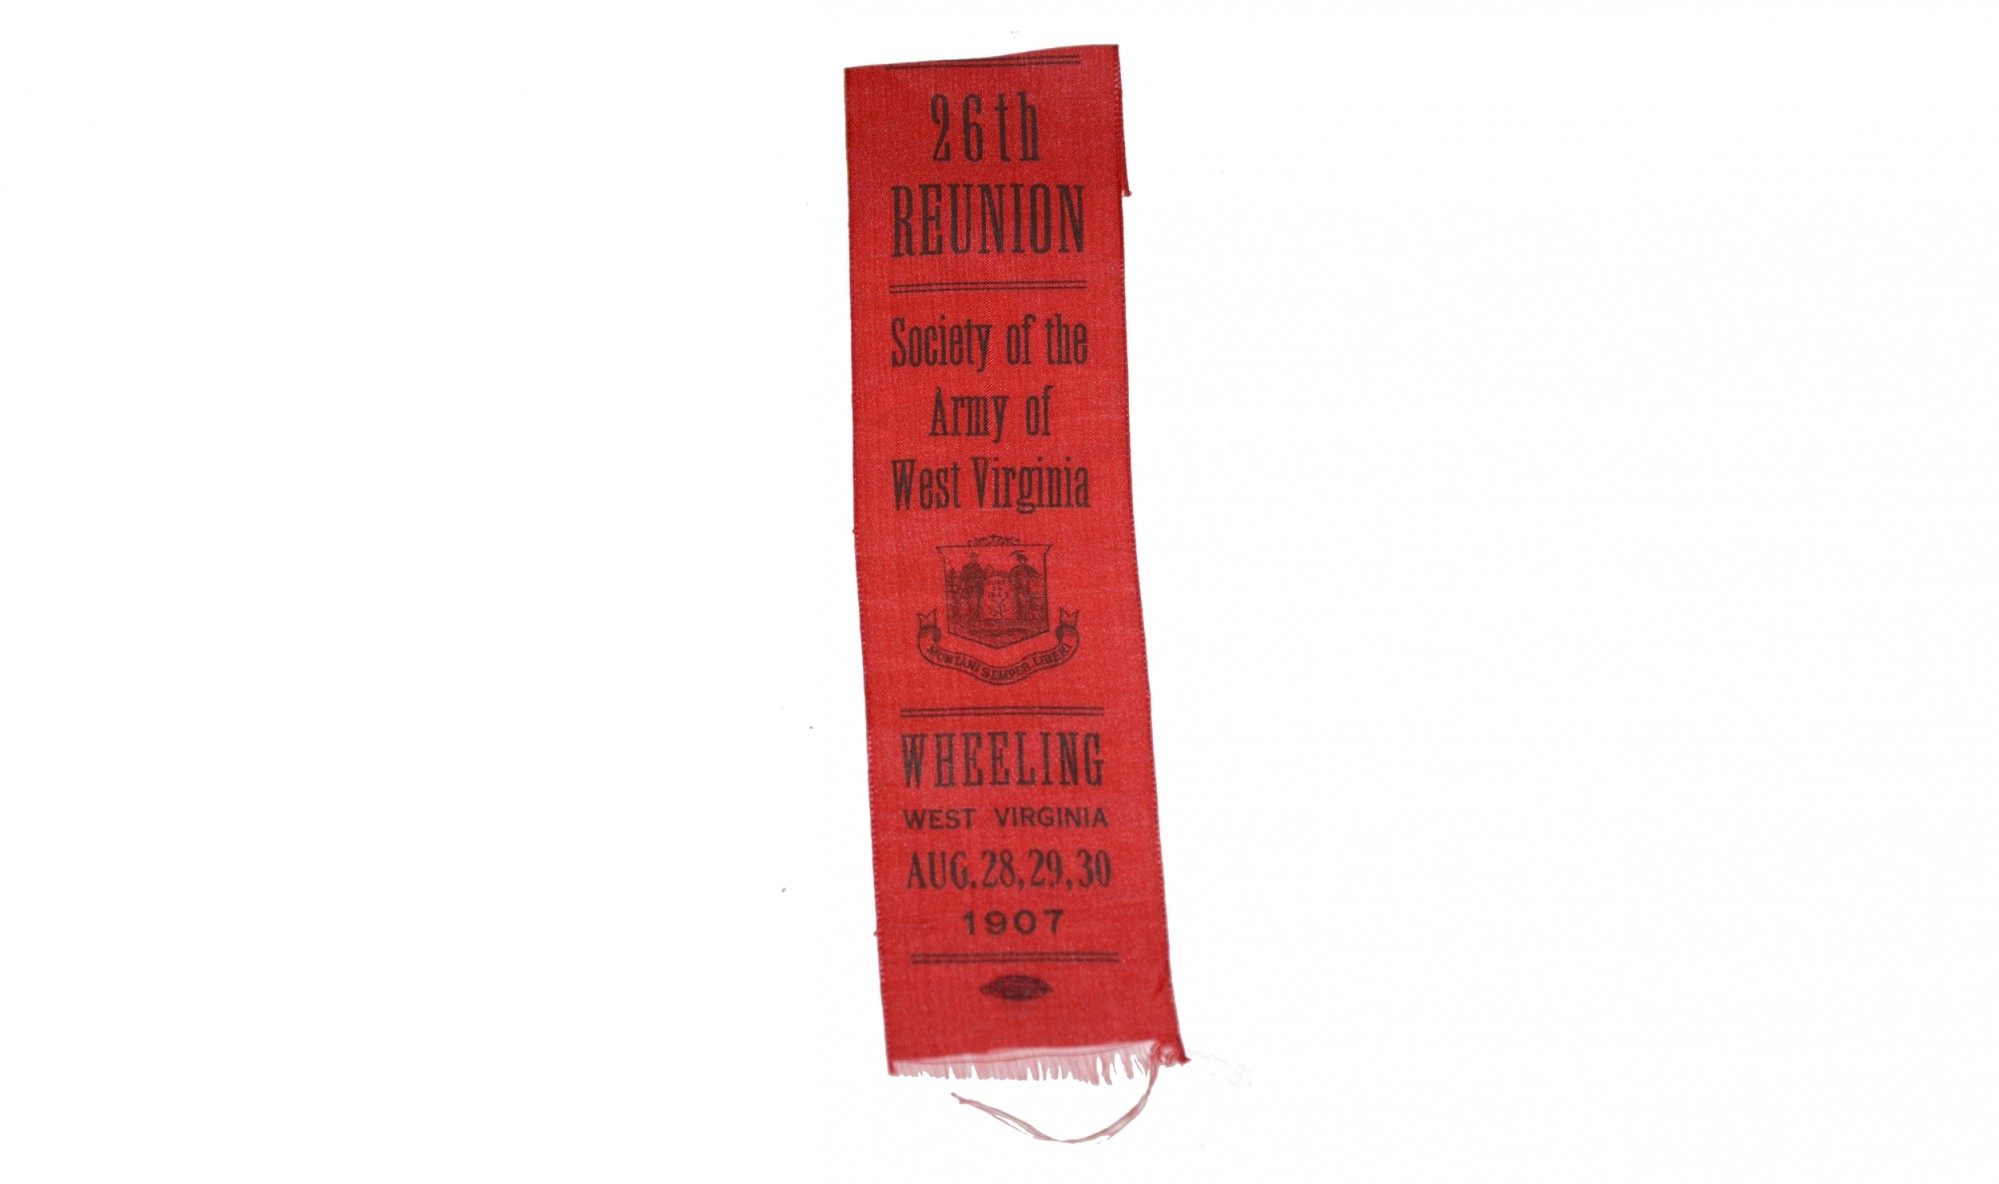 1907 REUNION RIBBON – SOCIETY OF THE ARMY OF WEST VIRGINIA